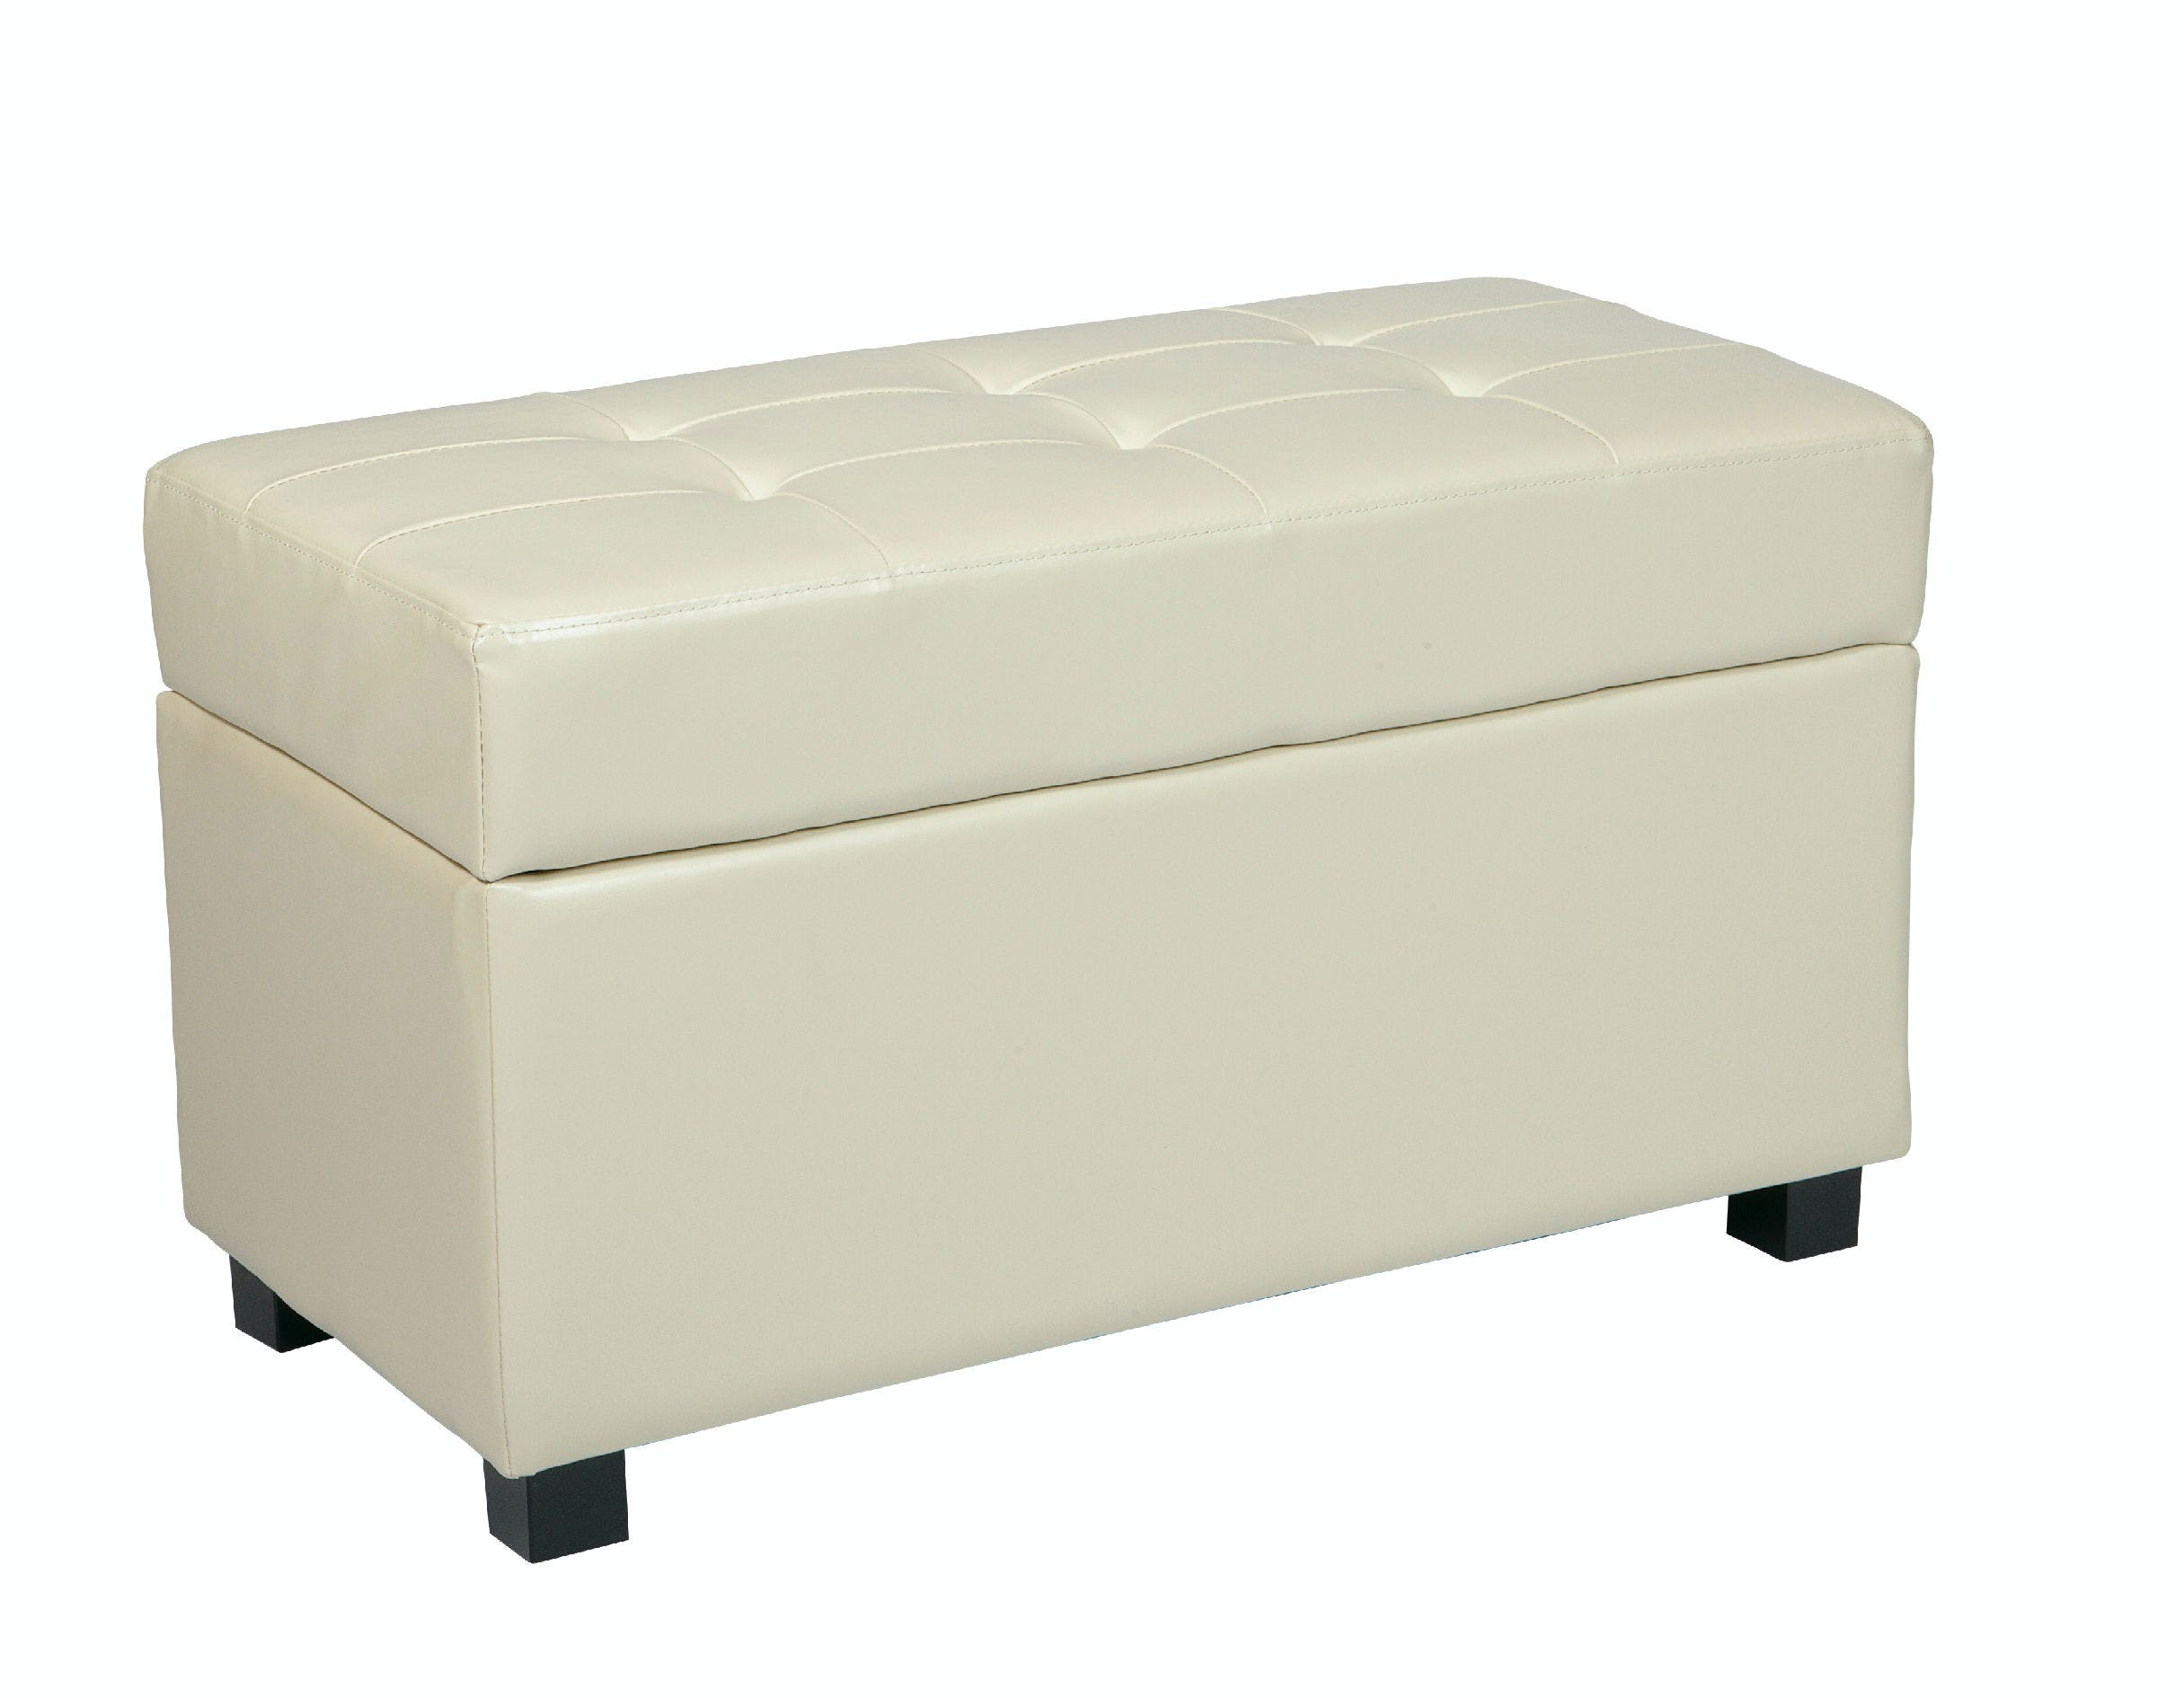 Office Star Products Living Room Cream Faux Leather Storage Ottoman Met804cm Hennen Furniture